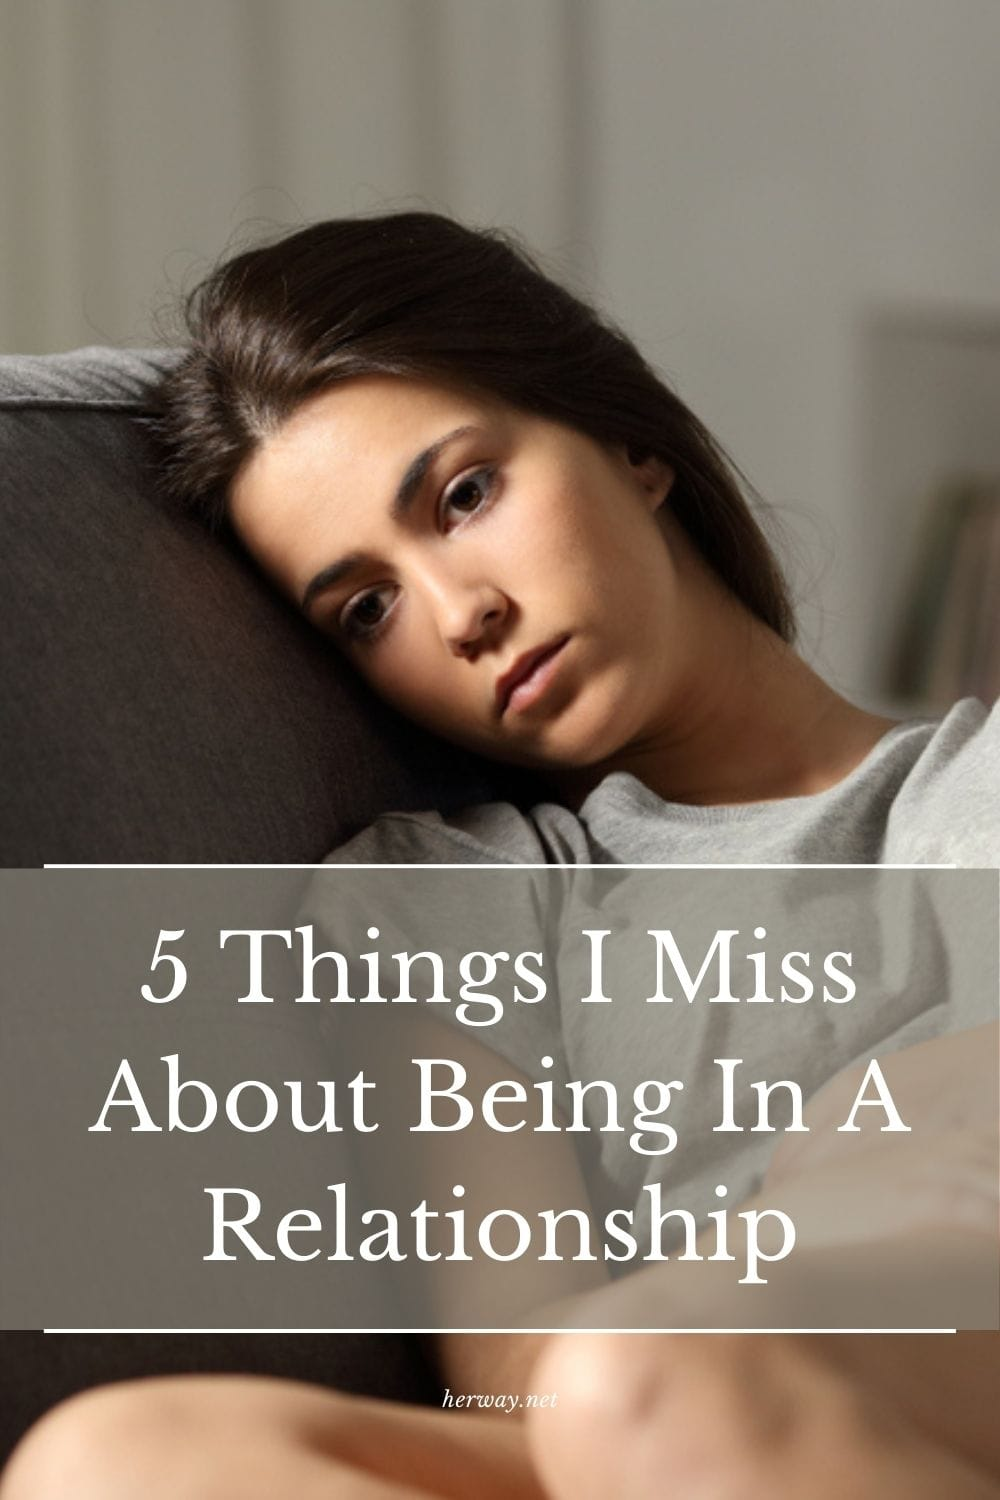 5 Things I Miss About Being In A Relationship